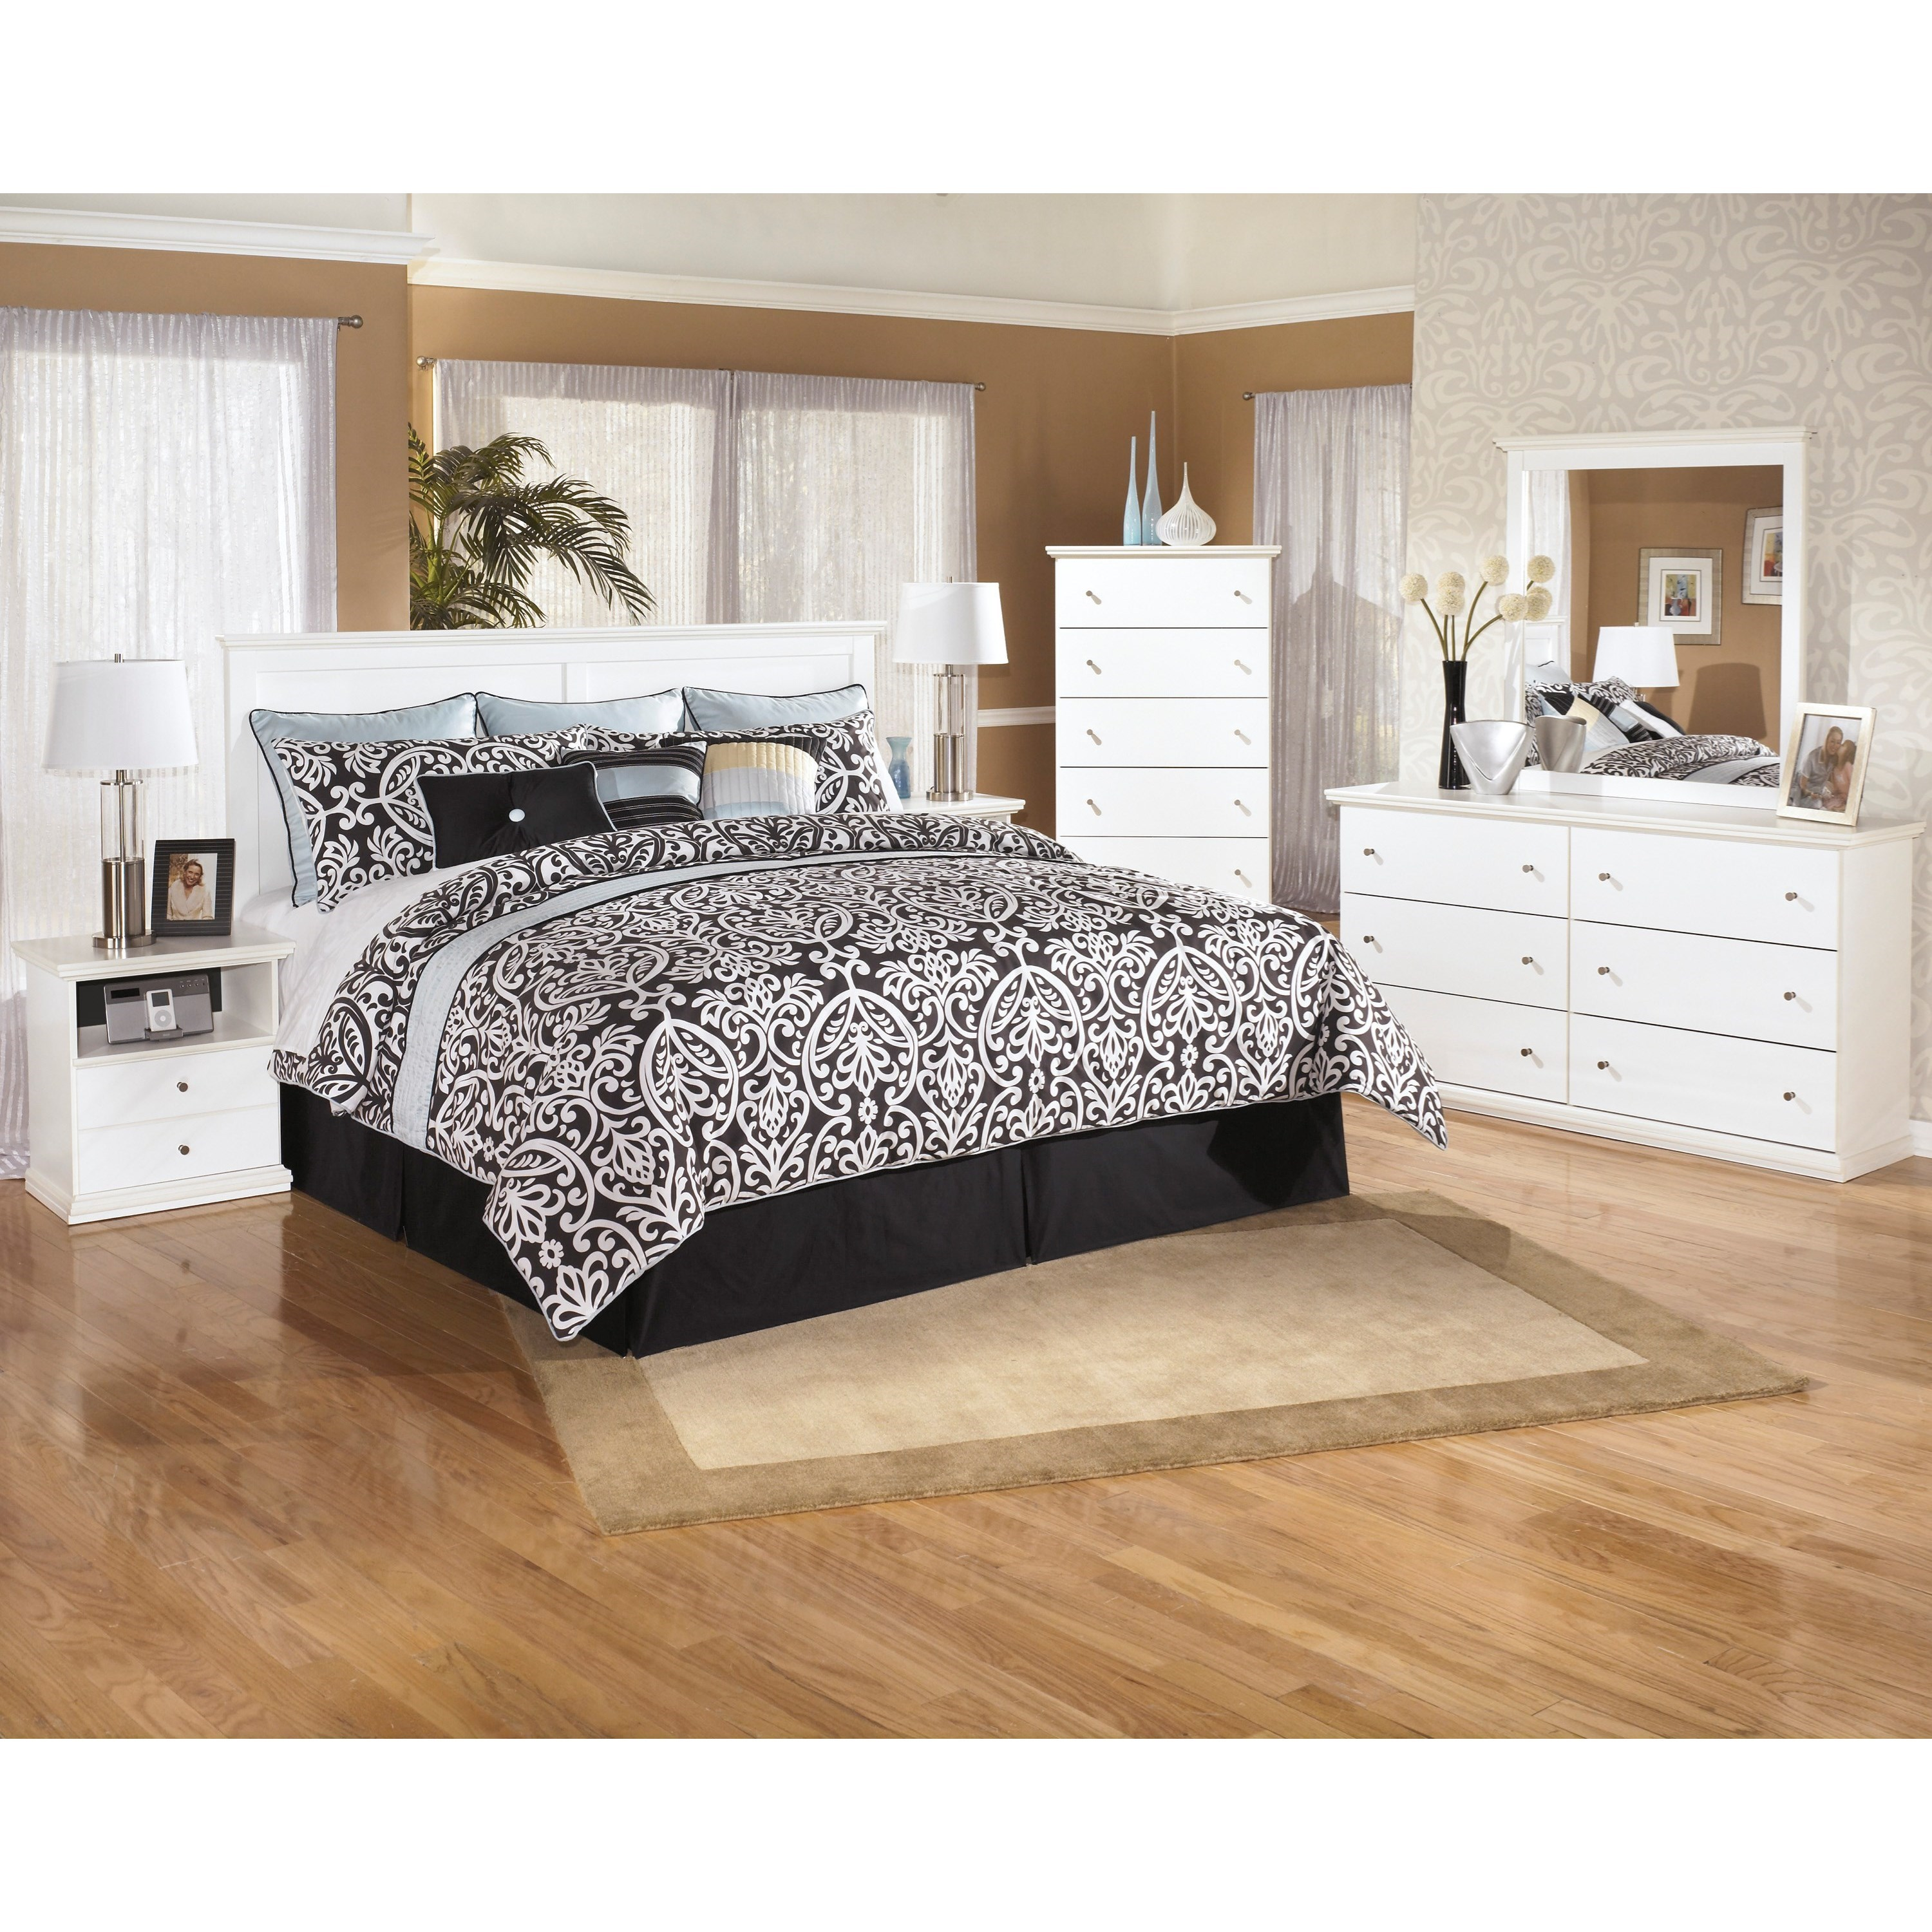 Bostwick Shoals King Bedroom Group by Signature Design by Ashley at A1 Furniture & Mattress